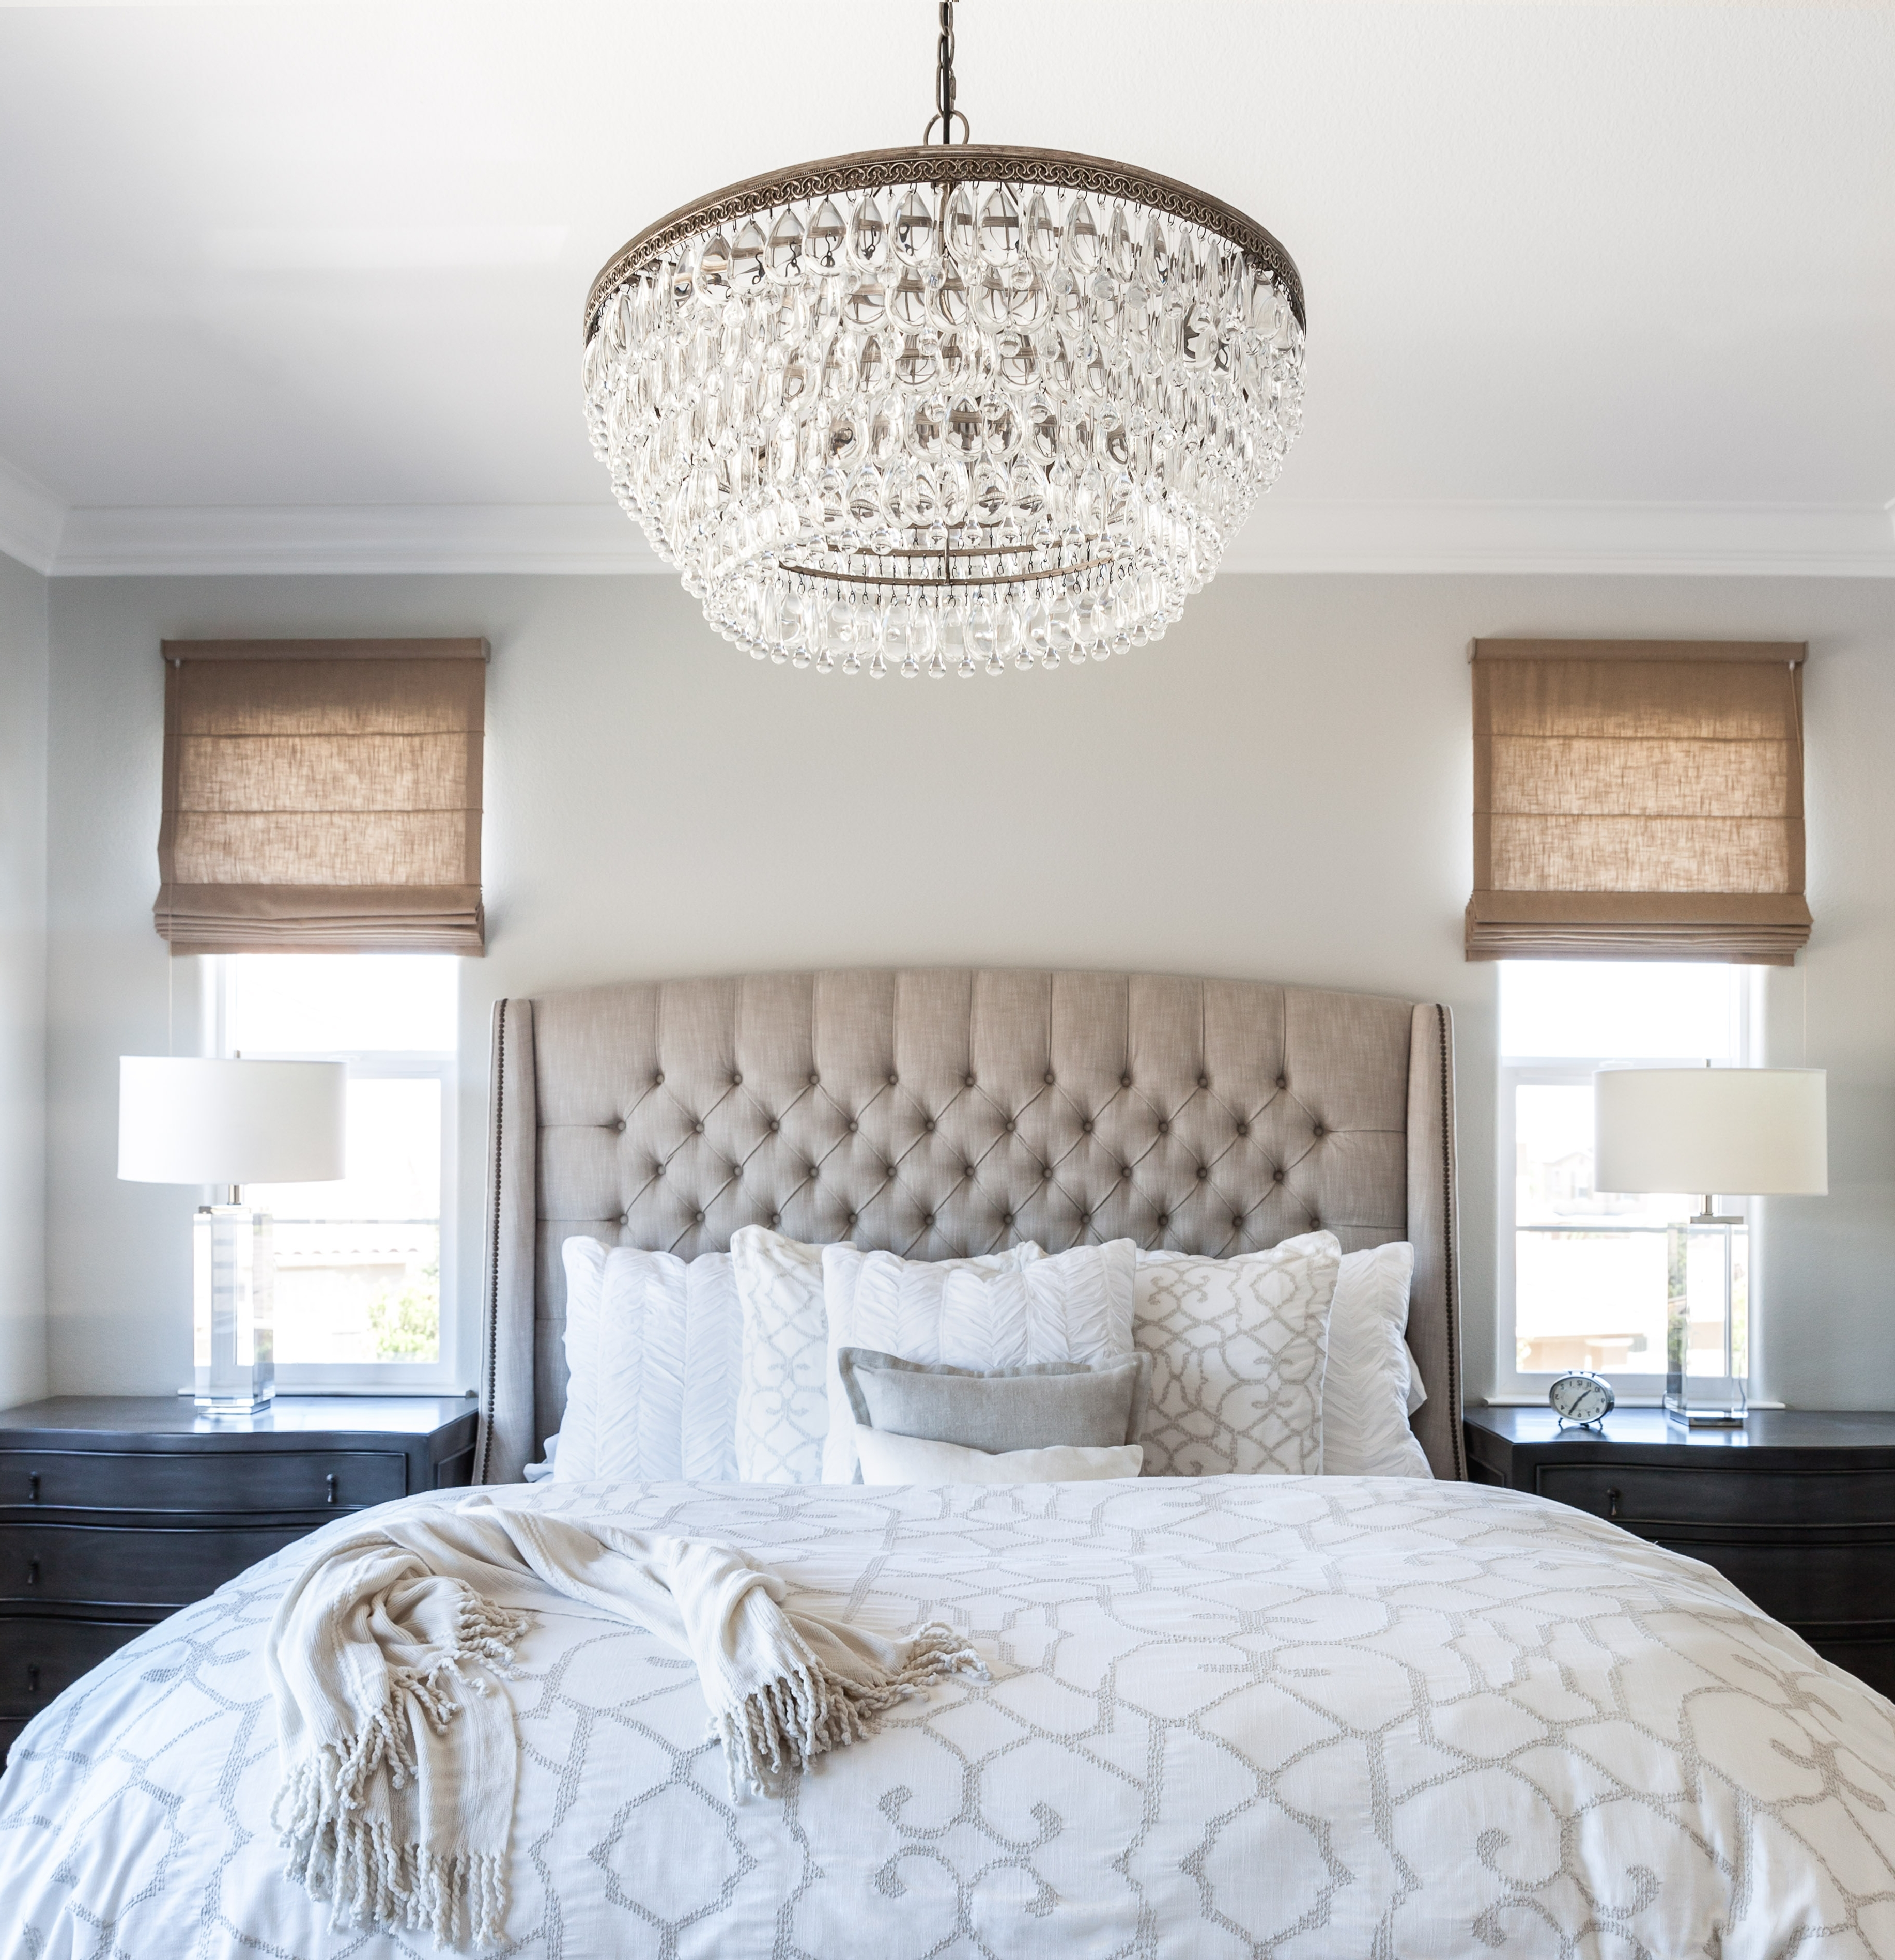 Best And Newest Small Glass Chandeliers Inside Chandeliers Design : Amazing Small Chandeliers For Bedroom (View 2 of 20)